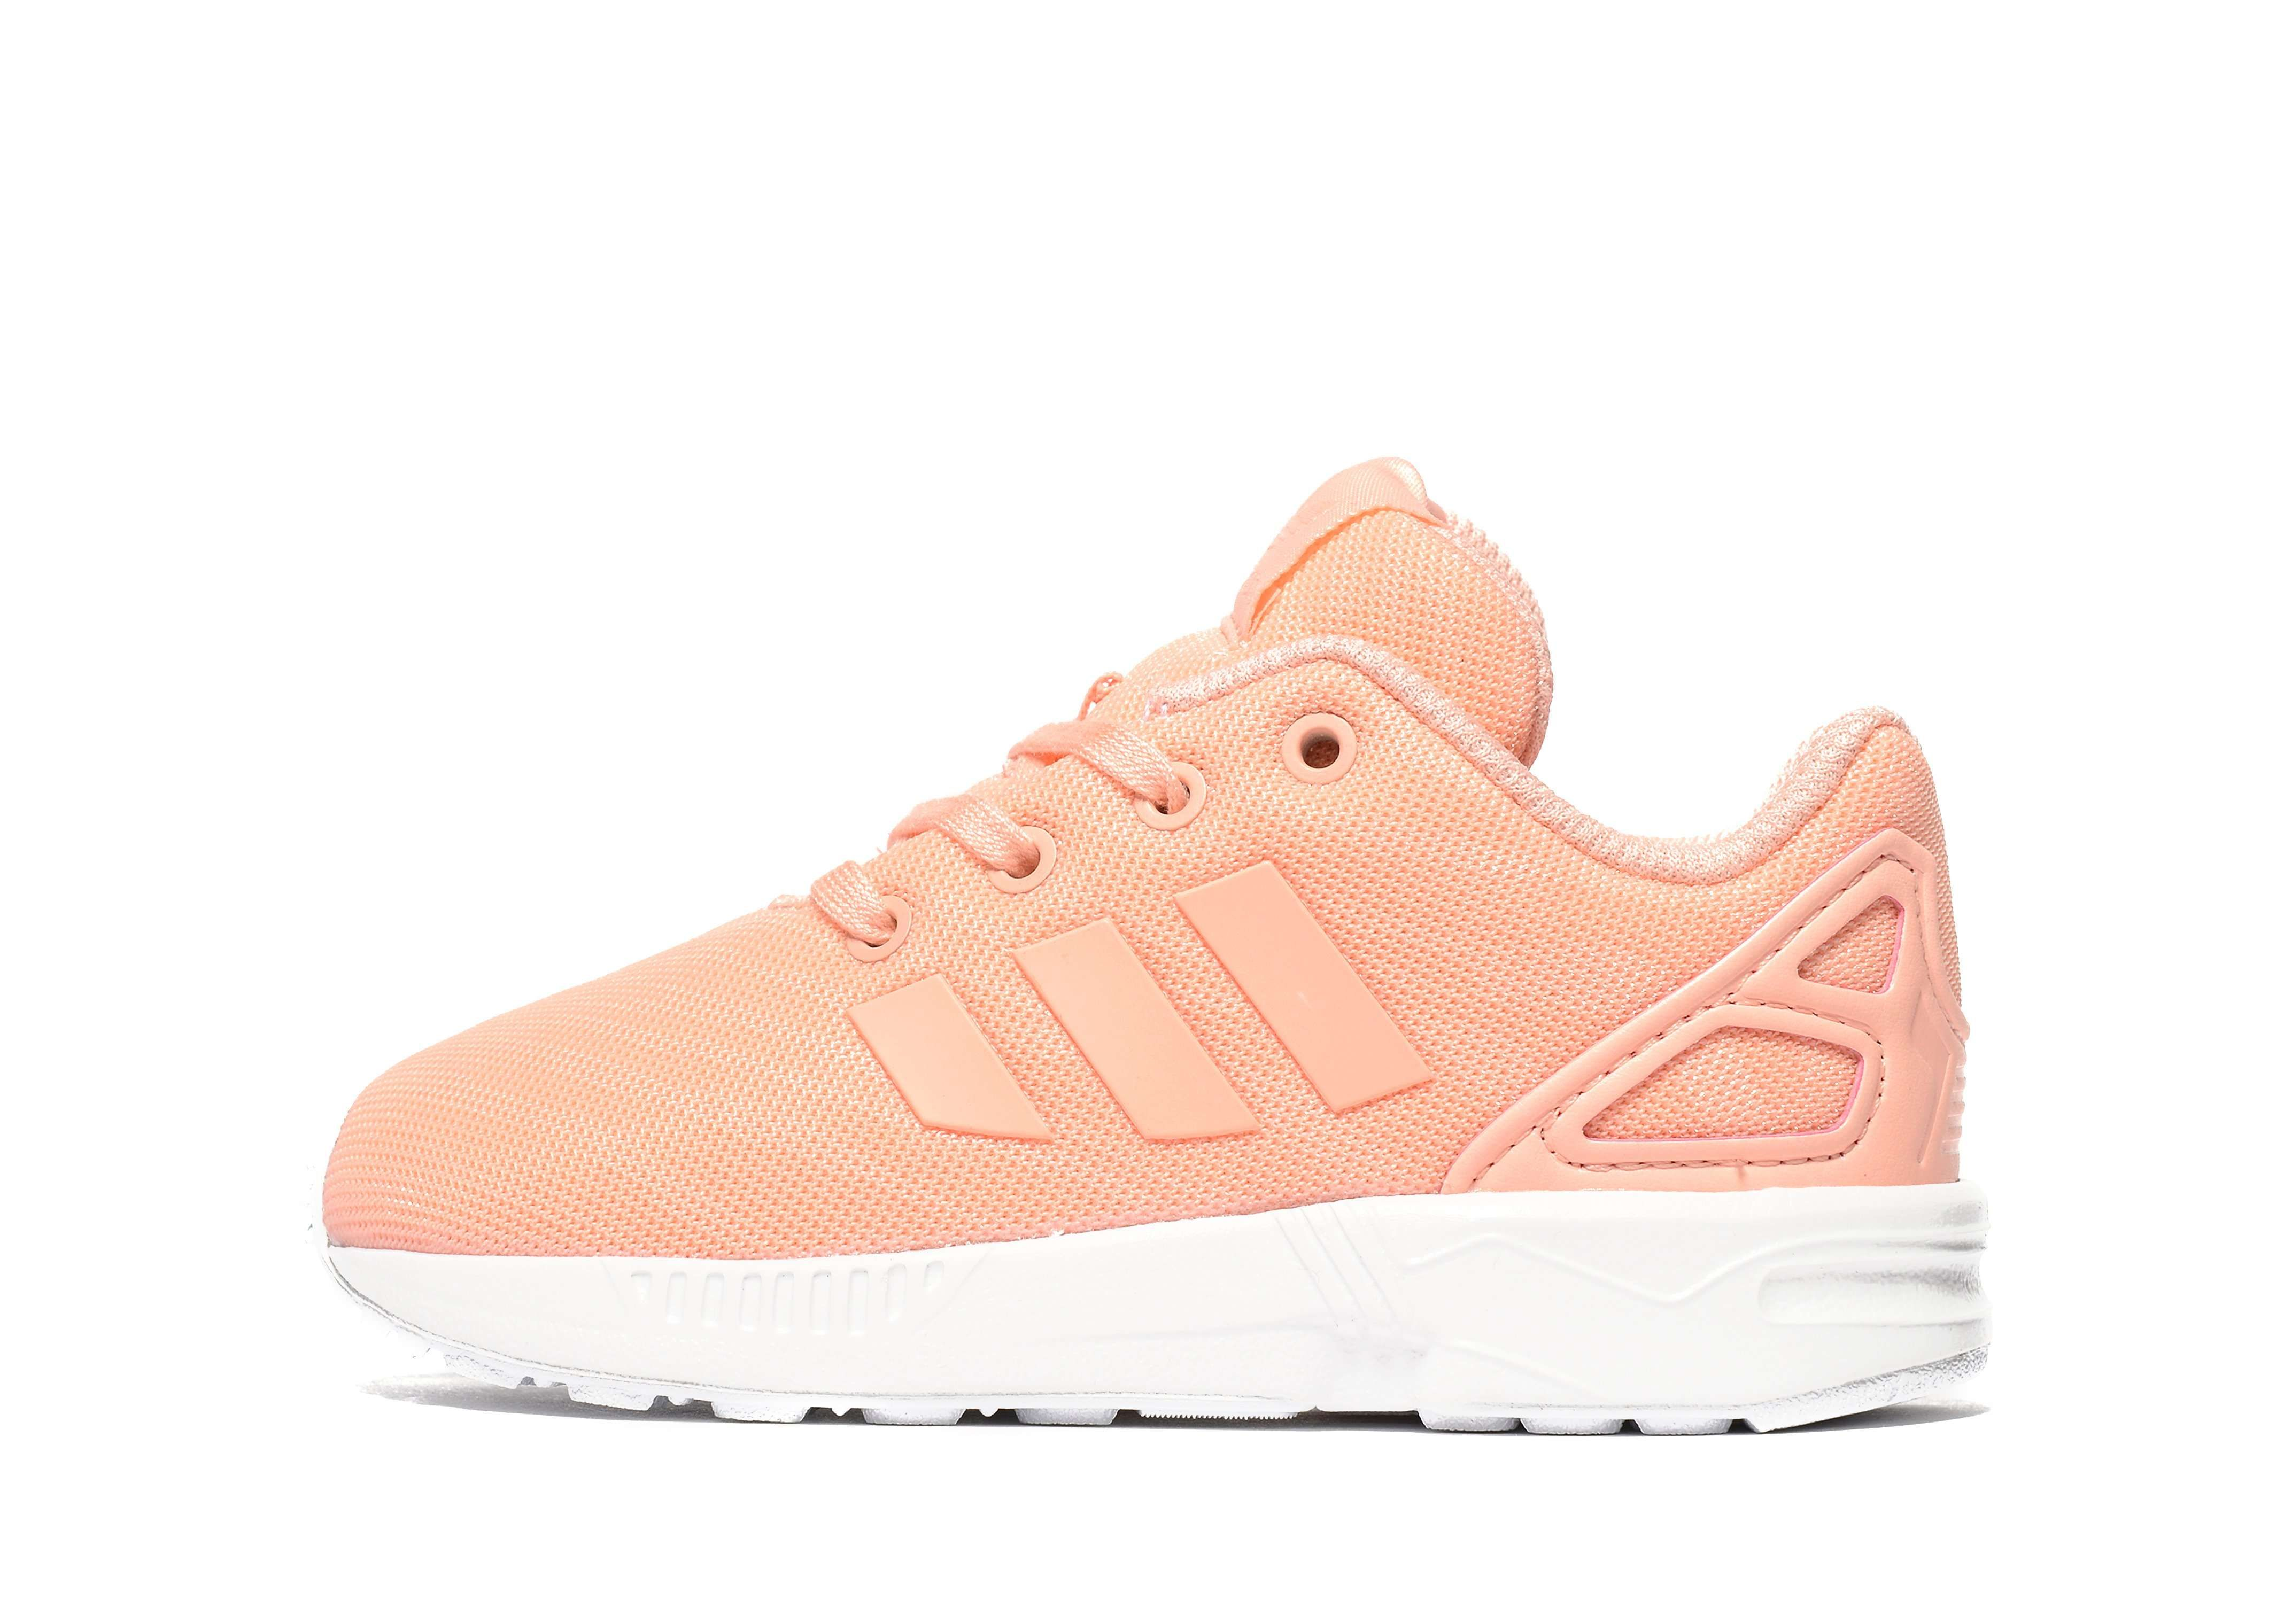 france adidas zx flux baby pink 6d9c1 bb9e5